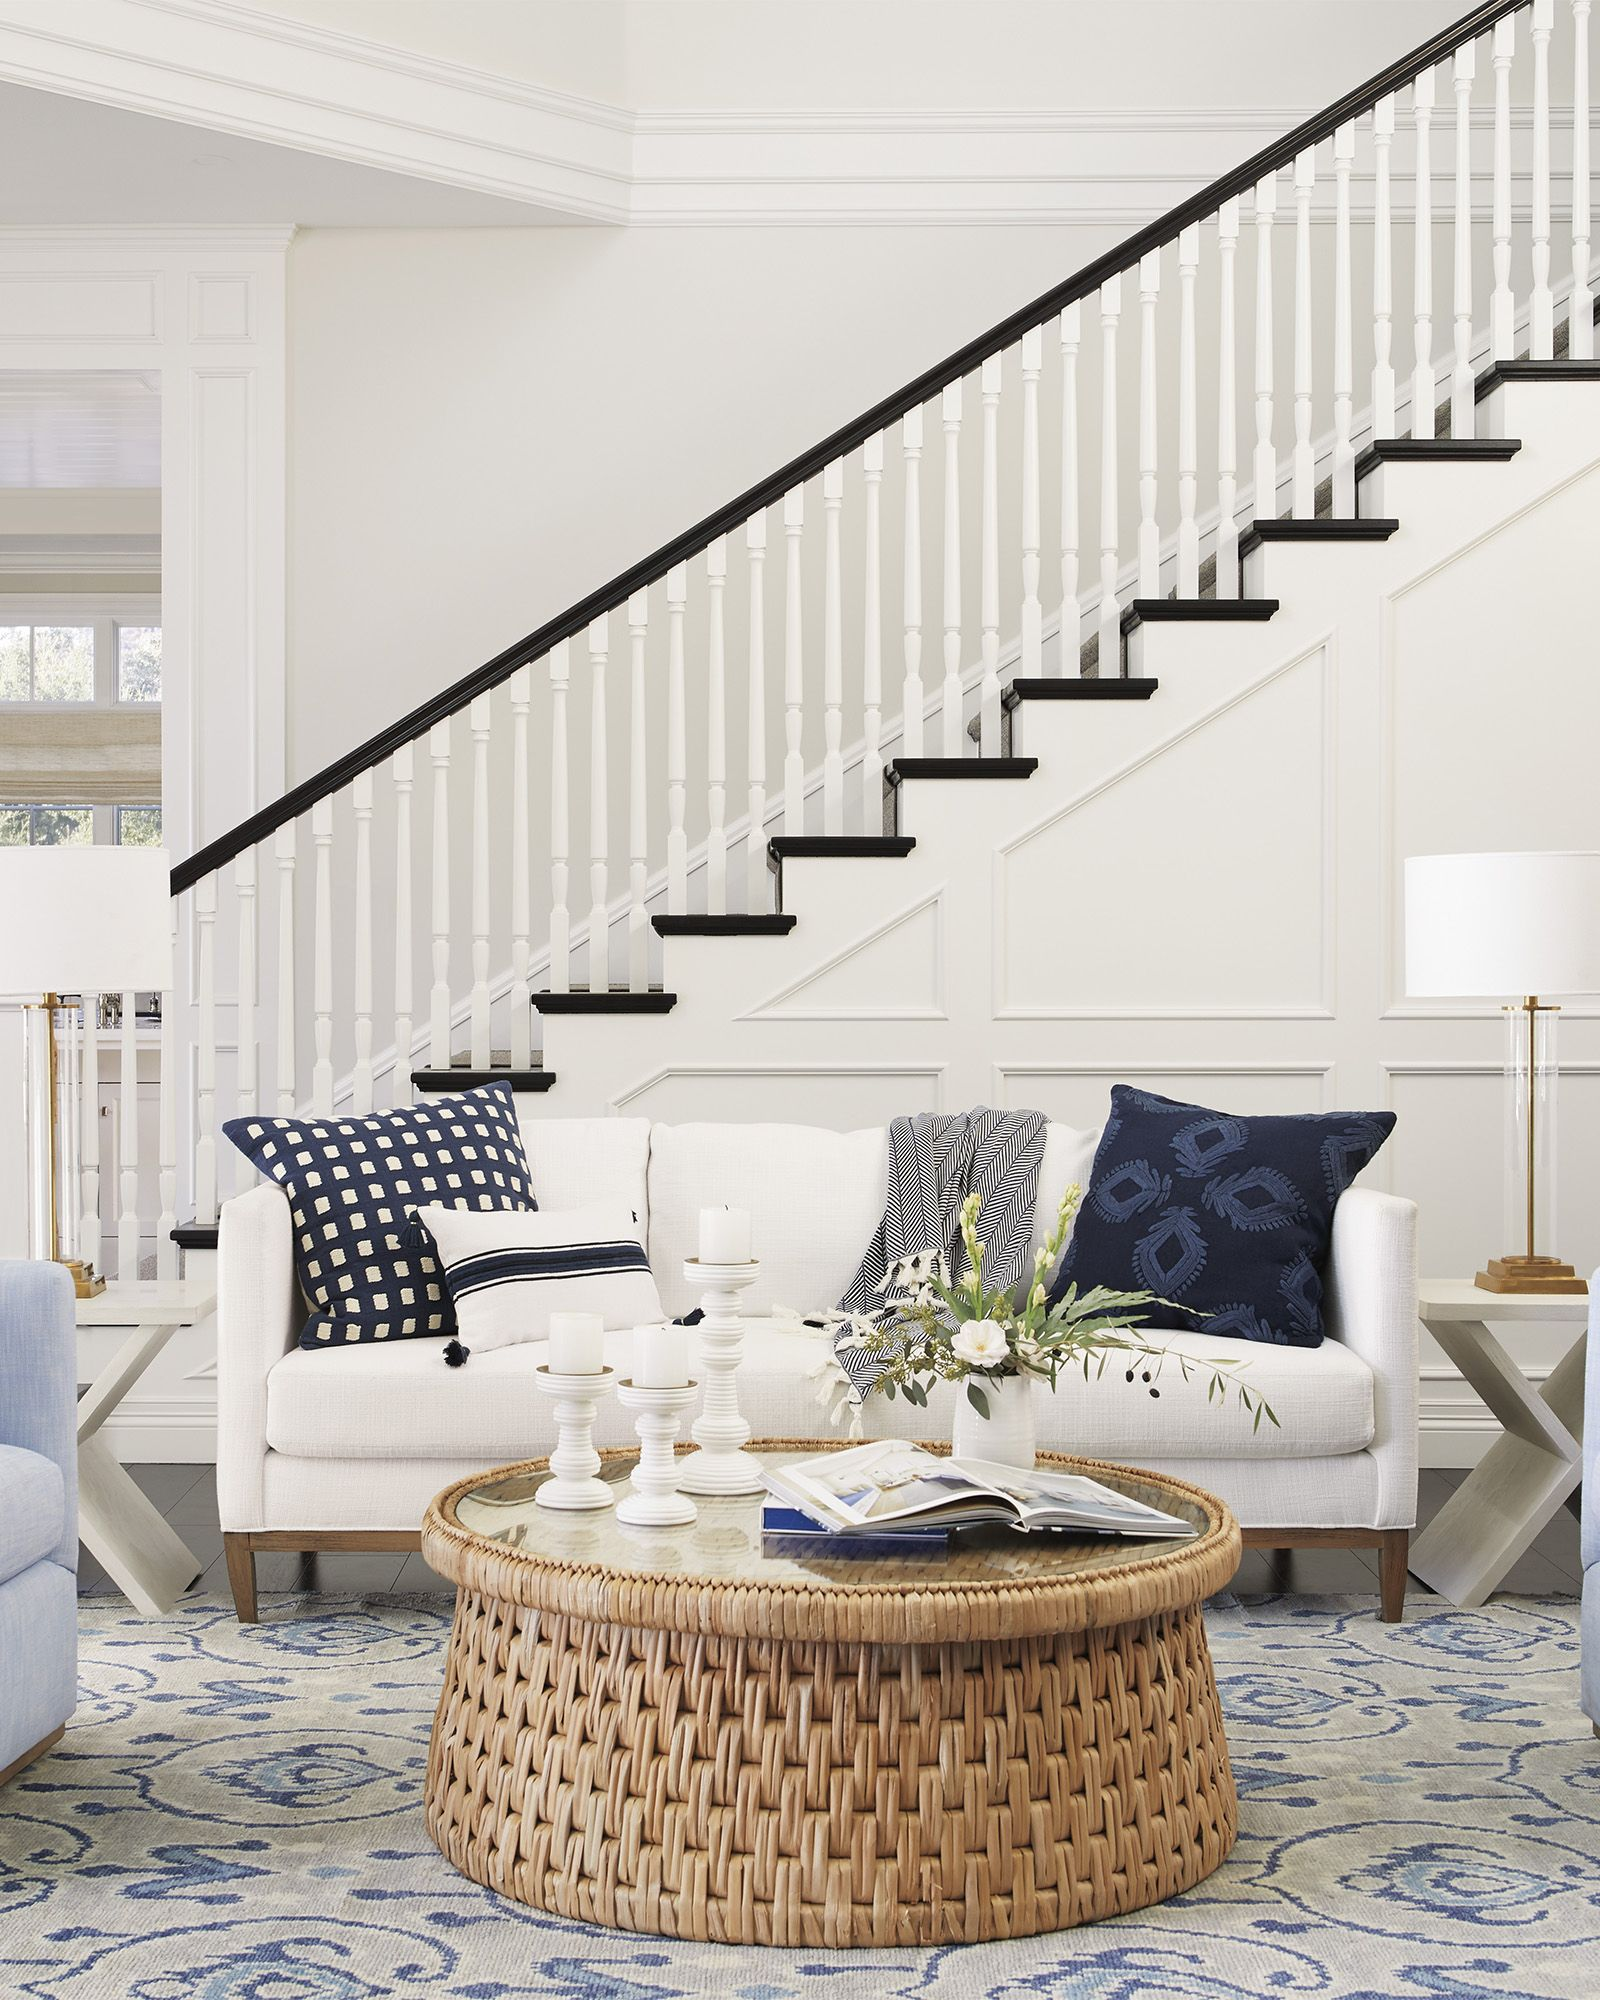 Cape Coffee Table In 2021 Luxe Living Room Cape Cod House Interior Living Room Designs [ 2000 x 1600 Pixel ]